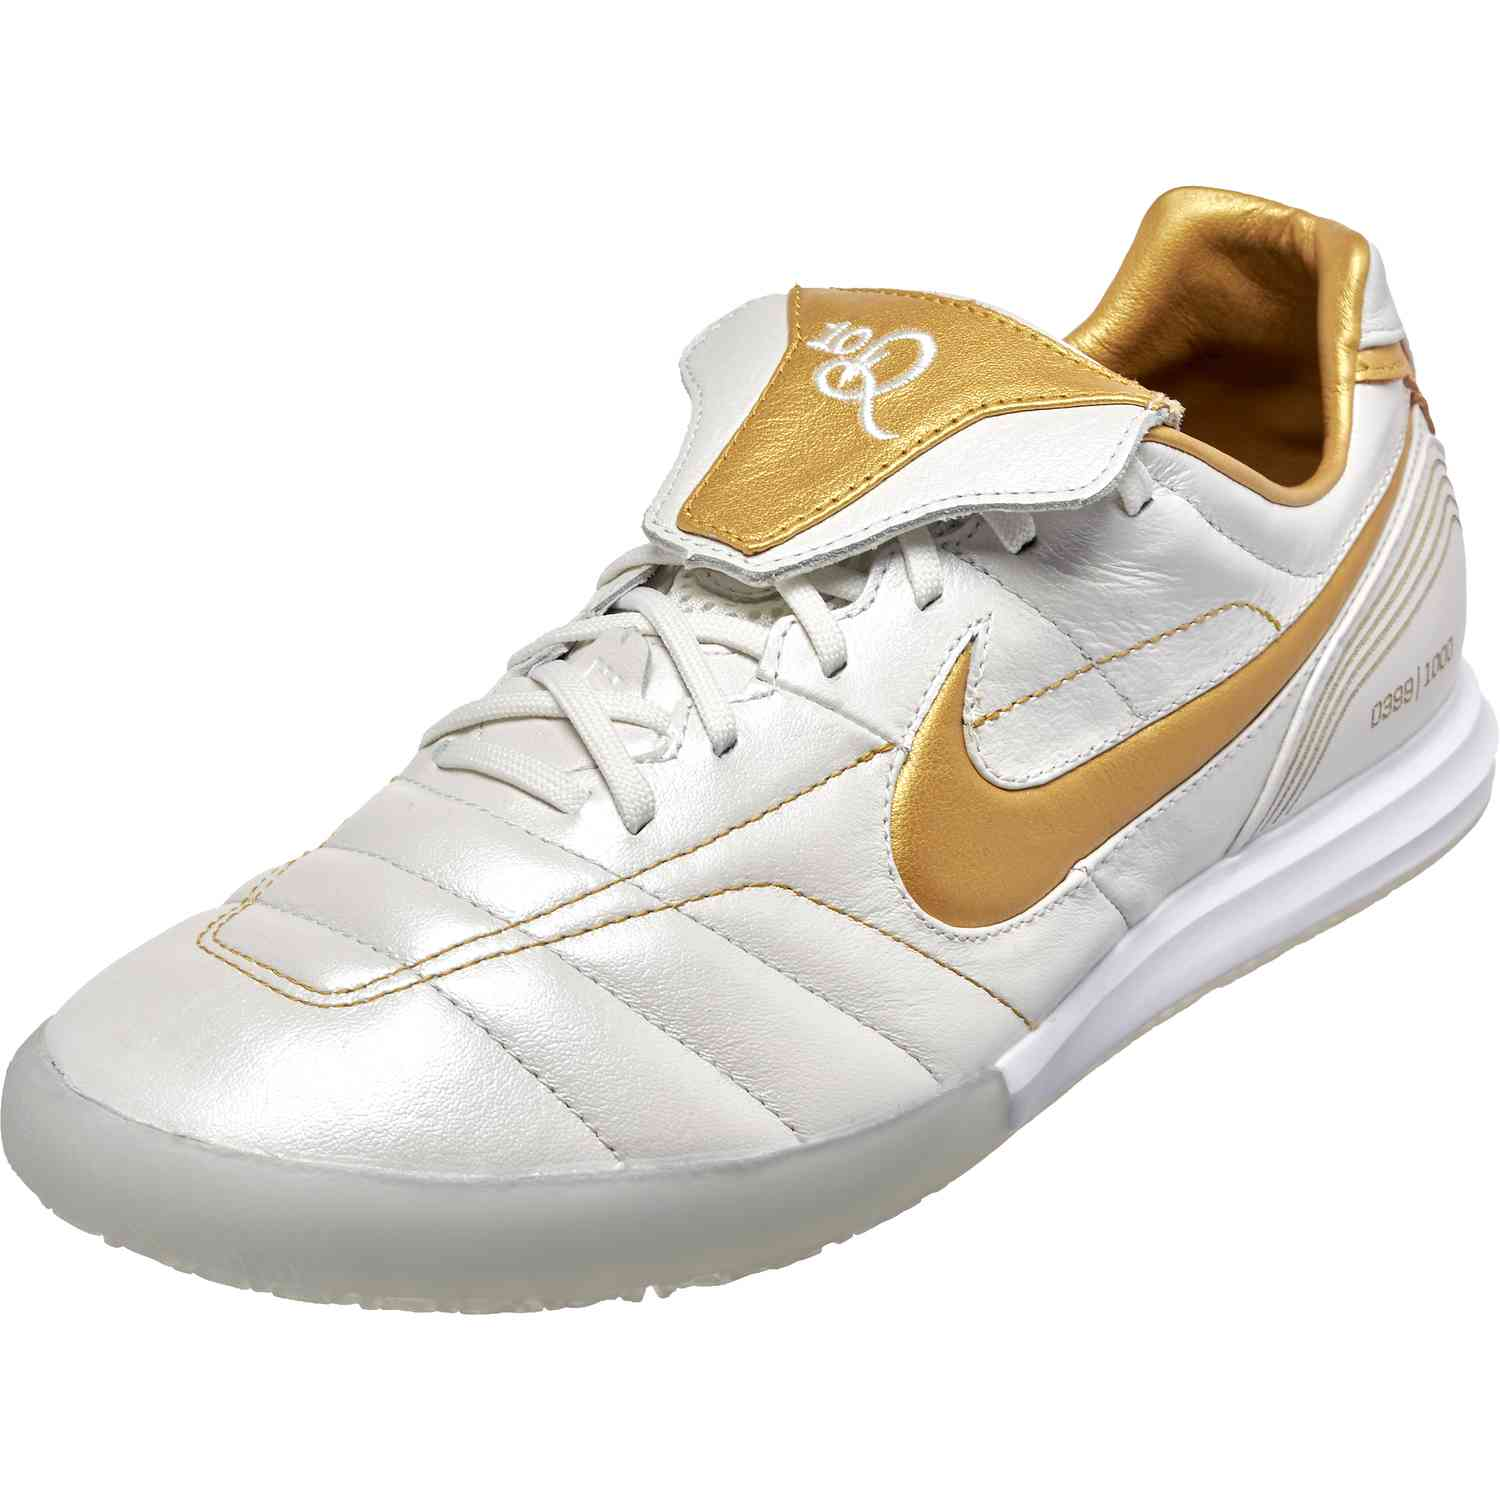 0a56e294fbdd Nike Tiempo Lunar Legend 10R Elite IC - White and Gold - SoccerPro.com